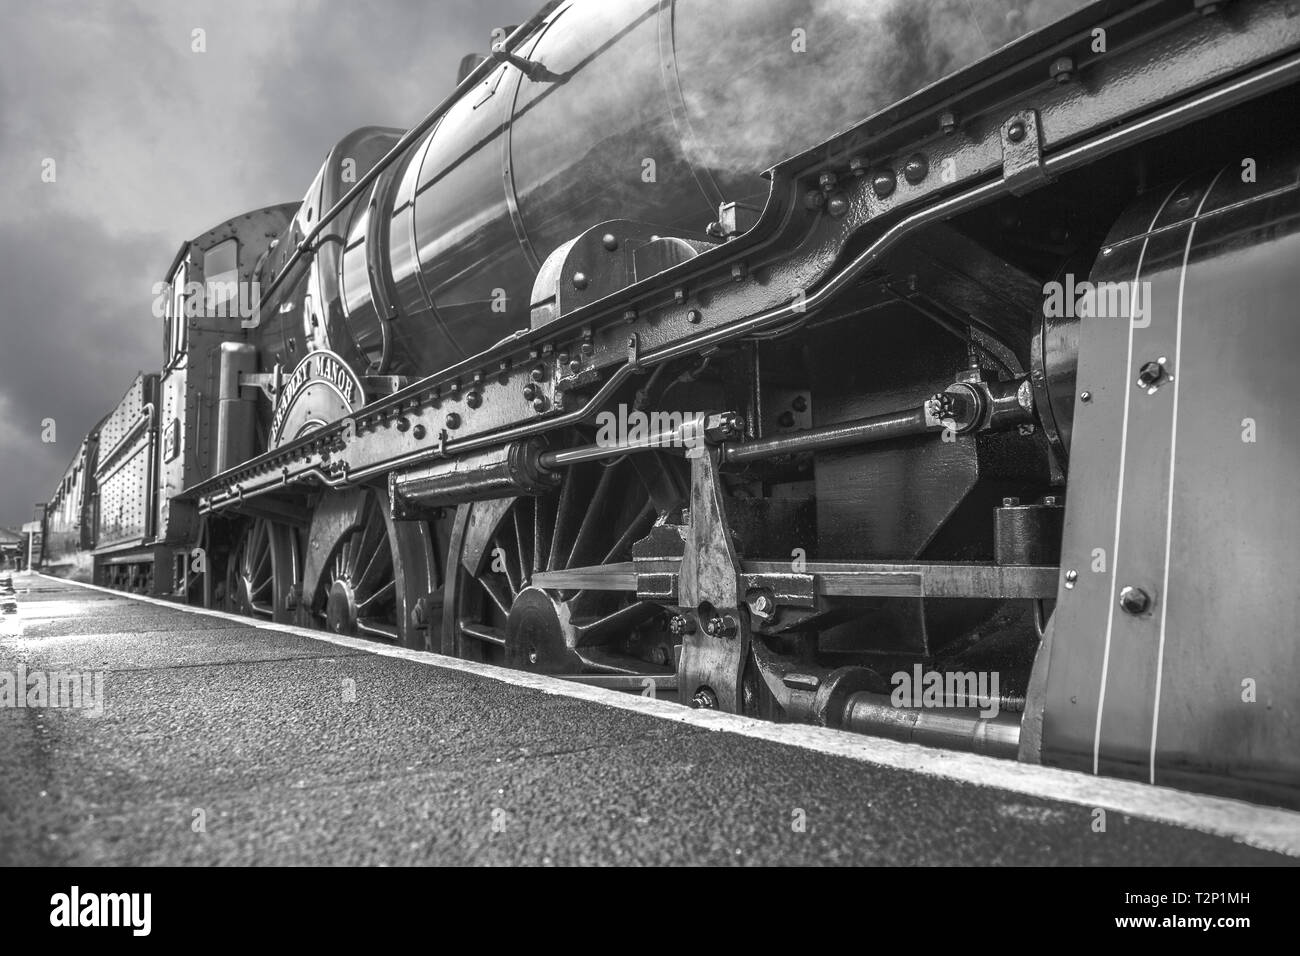 Black and white, moody, close-up side view of a vintage UK steam train awaiting departure alongside station platform, taken from a very low angle. - Stock Image